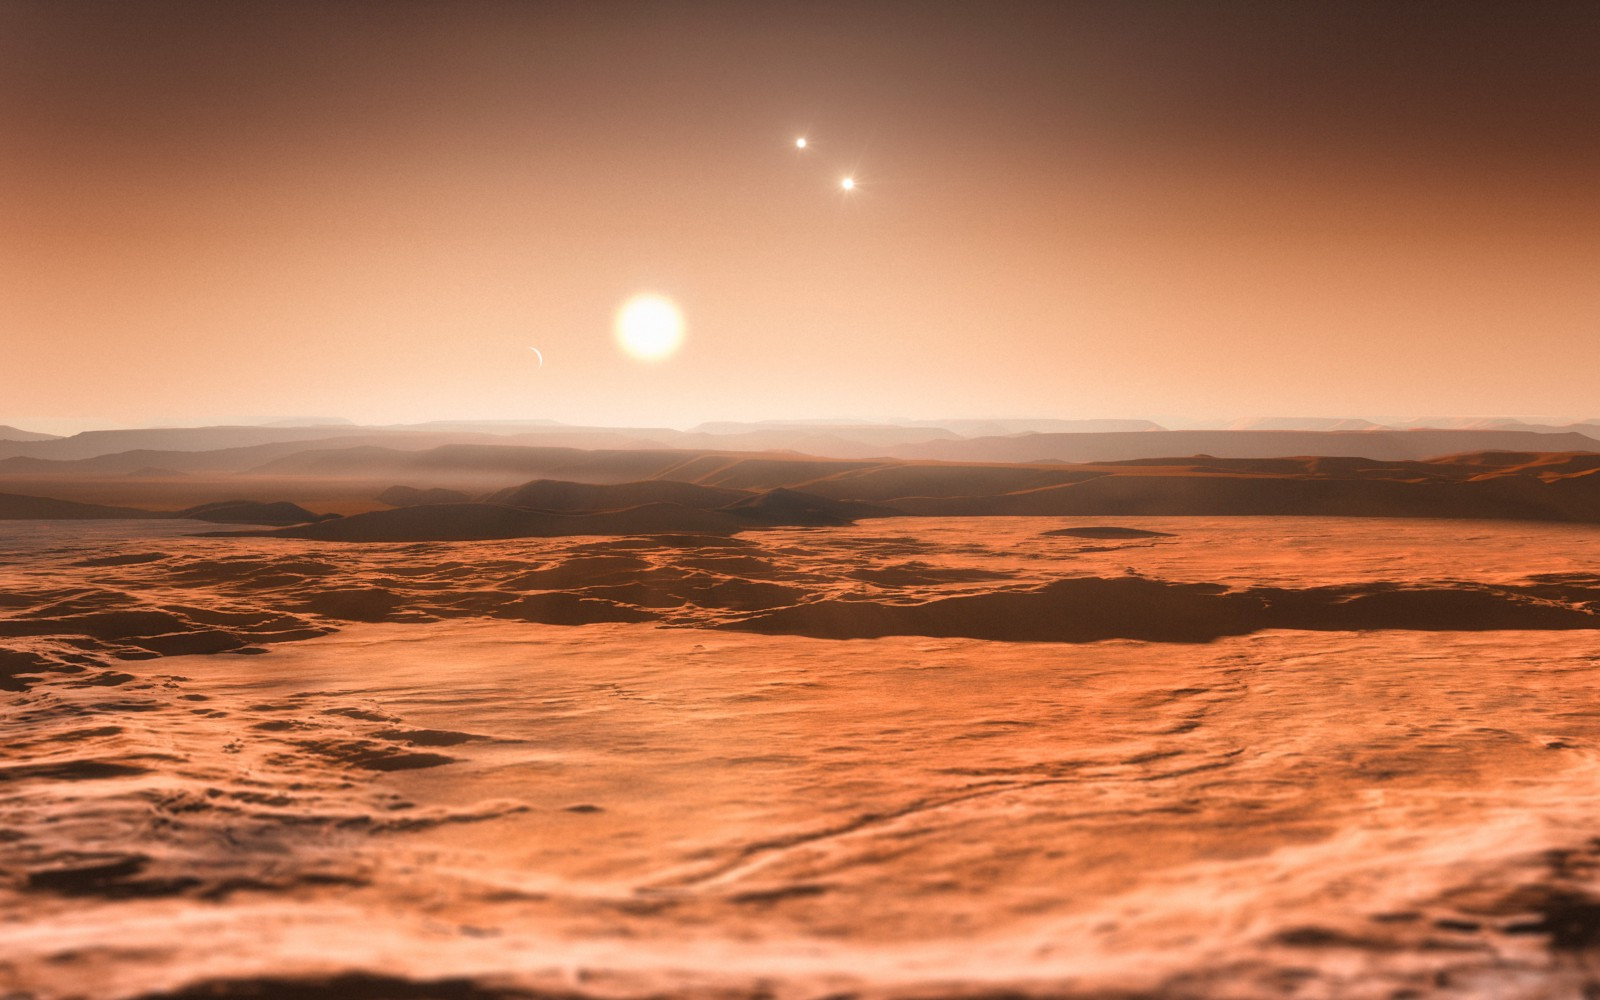 Dear Gliese 667Cd - A letter to our extrasolar friendJune, 2013